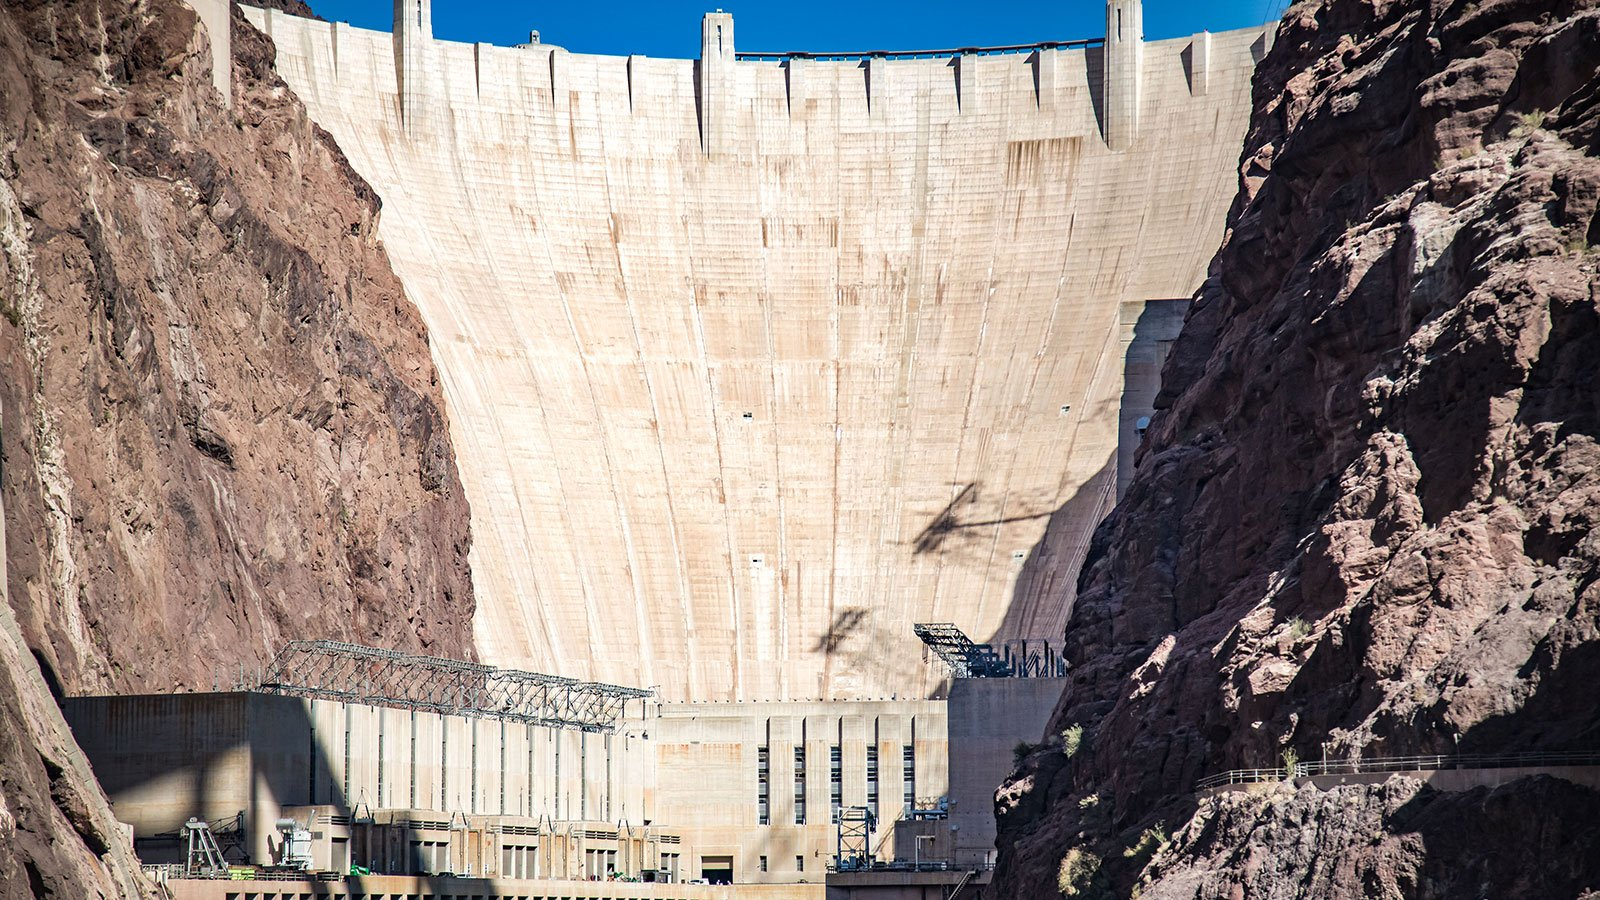 The Hoover Dam with the Hoover Dam Bypass in the foreground, 2017